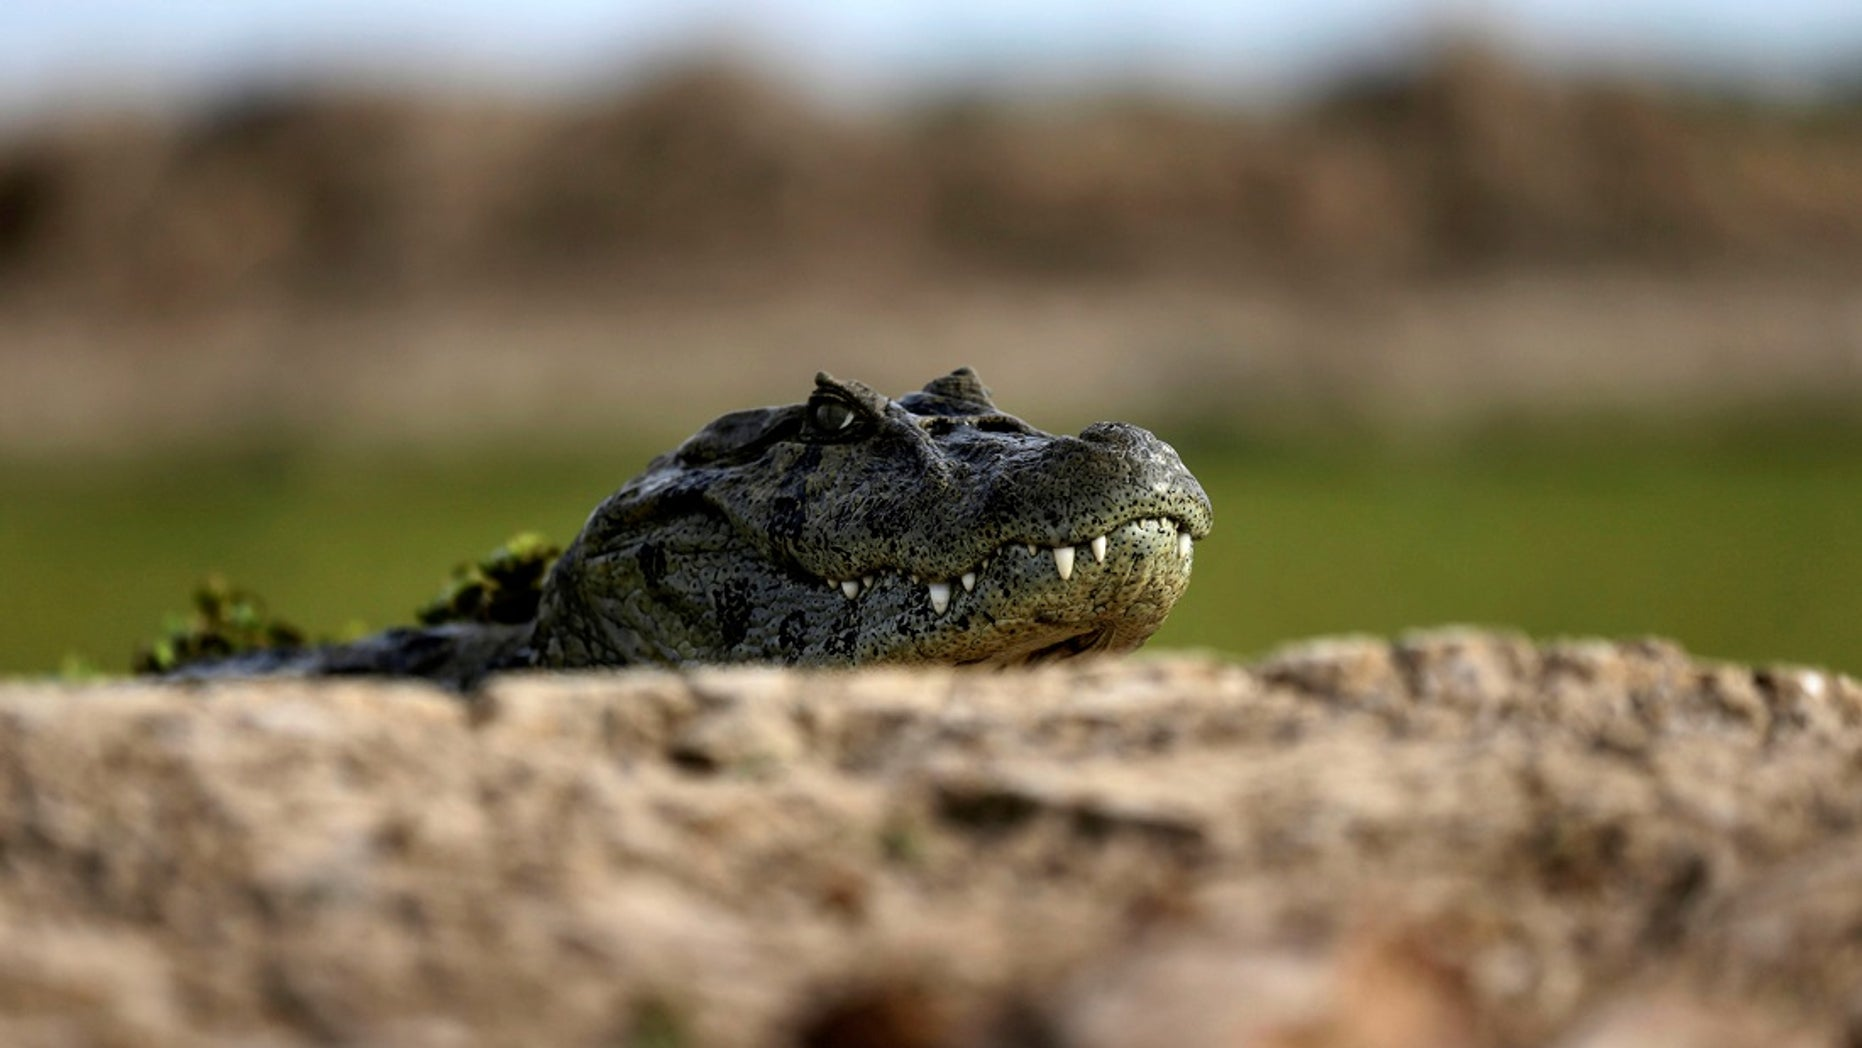 A 3-foot-long alligator found at an Atlantic City, New Jersey, hotel earlier this month was part of a rap video filmed there, according to authorities.